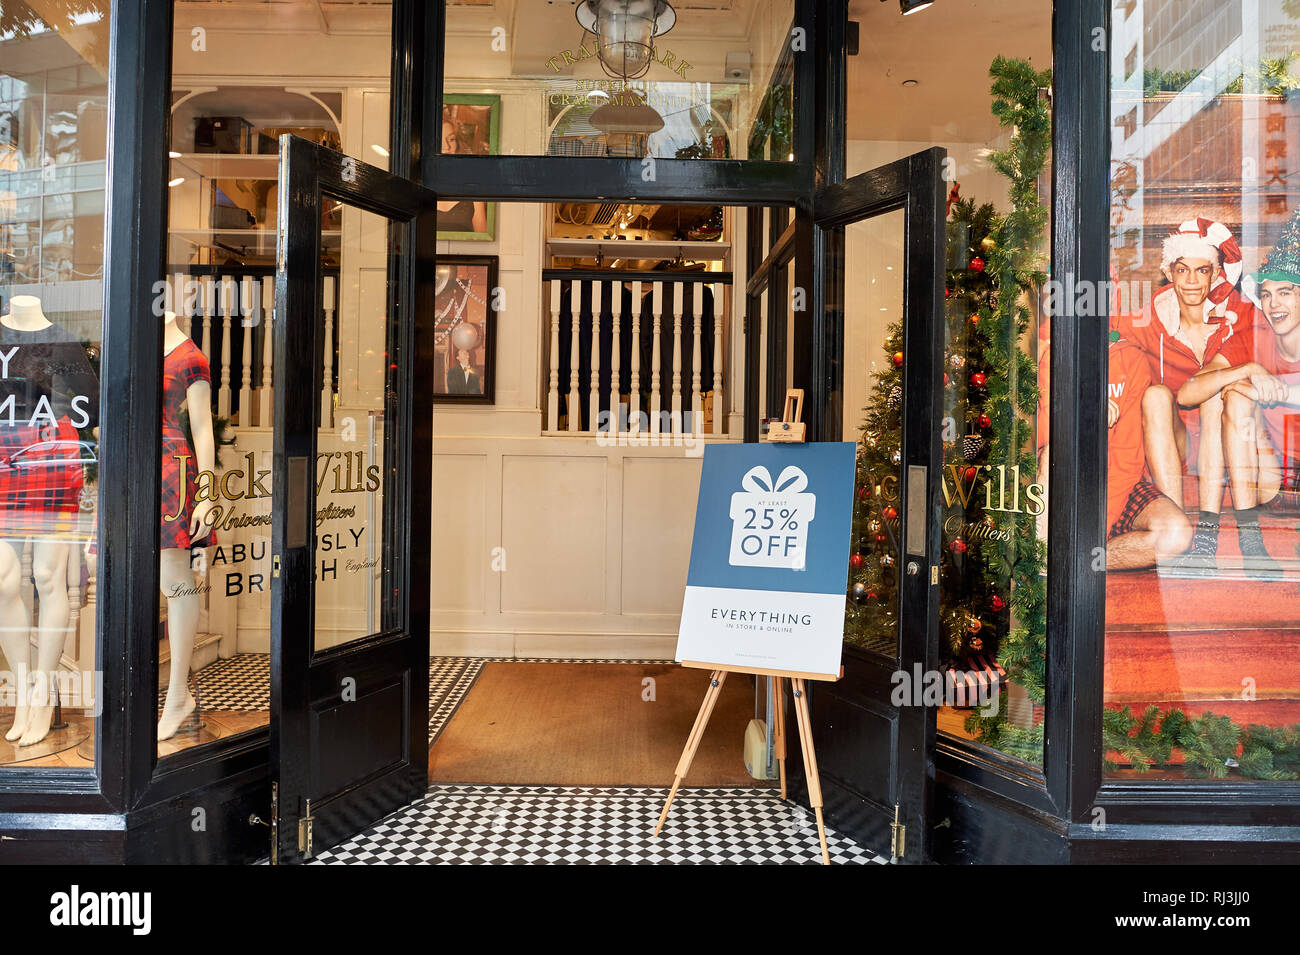 HONG KONG - DECEMBER 25, 2015: Jack Wills storefront. Jack Wills is a British clothing brand headquartered in London after establishing itself in Salc - Stock Image